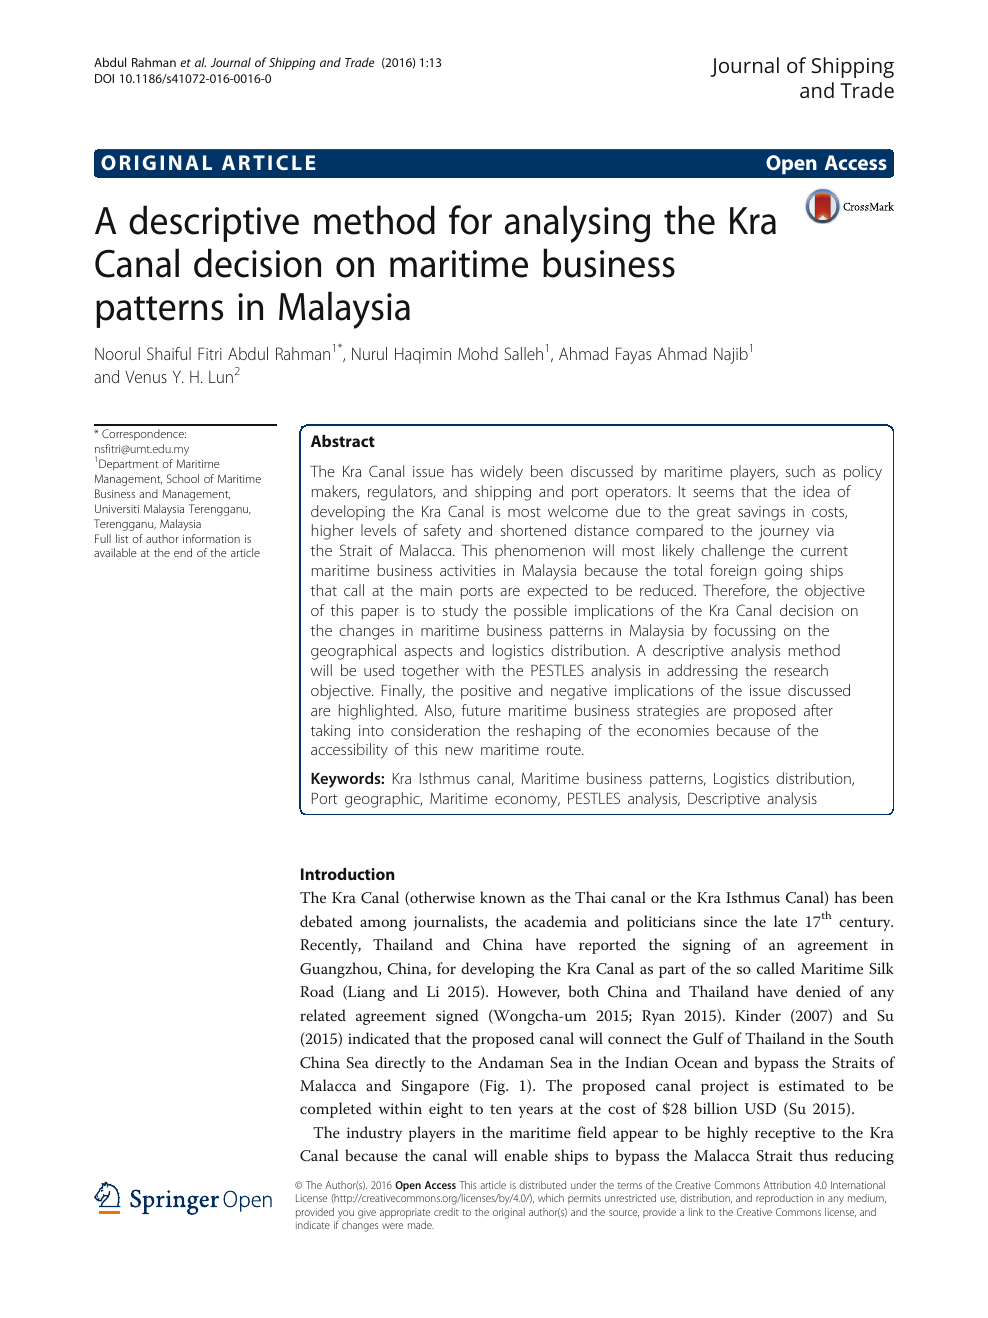 A descriptive method for analysing the Kra Canal decision on